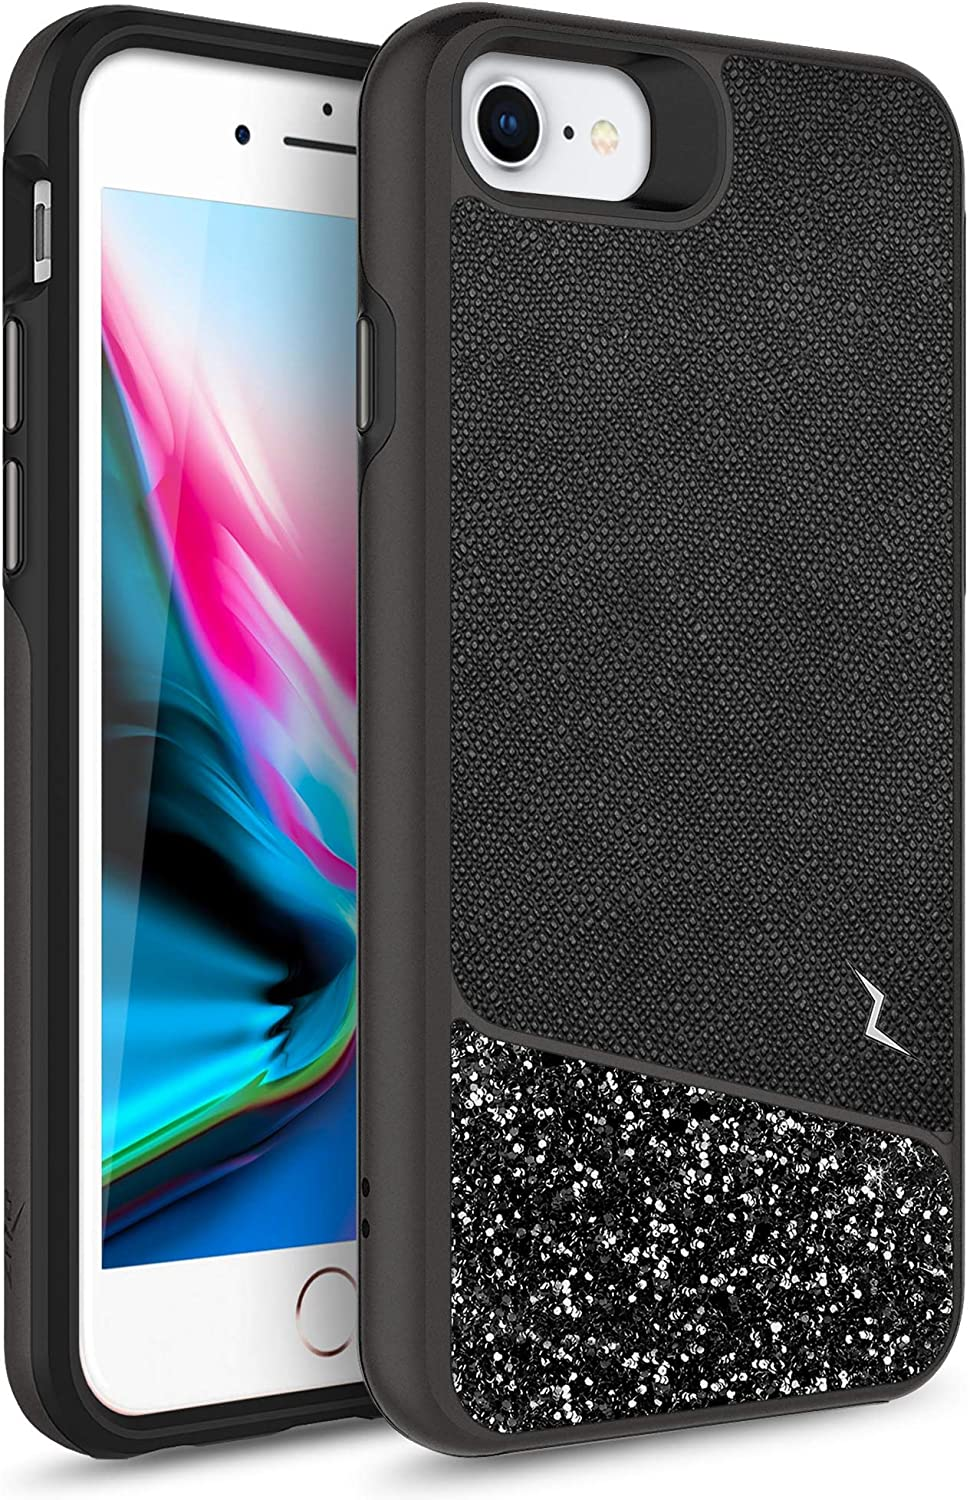 ZIZO Division Series for iPhone SE (2020) / iPhone 8 / iPhone 7 Case - Stellar